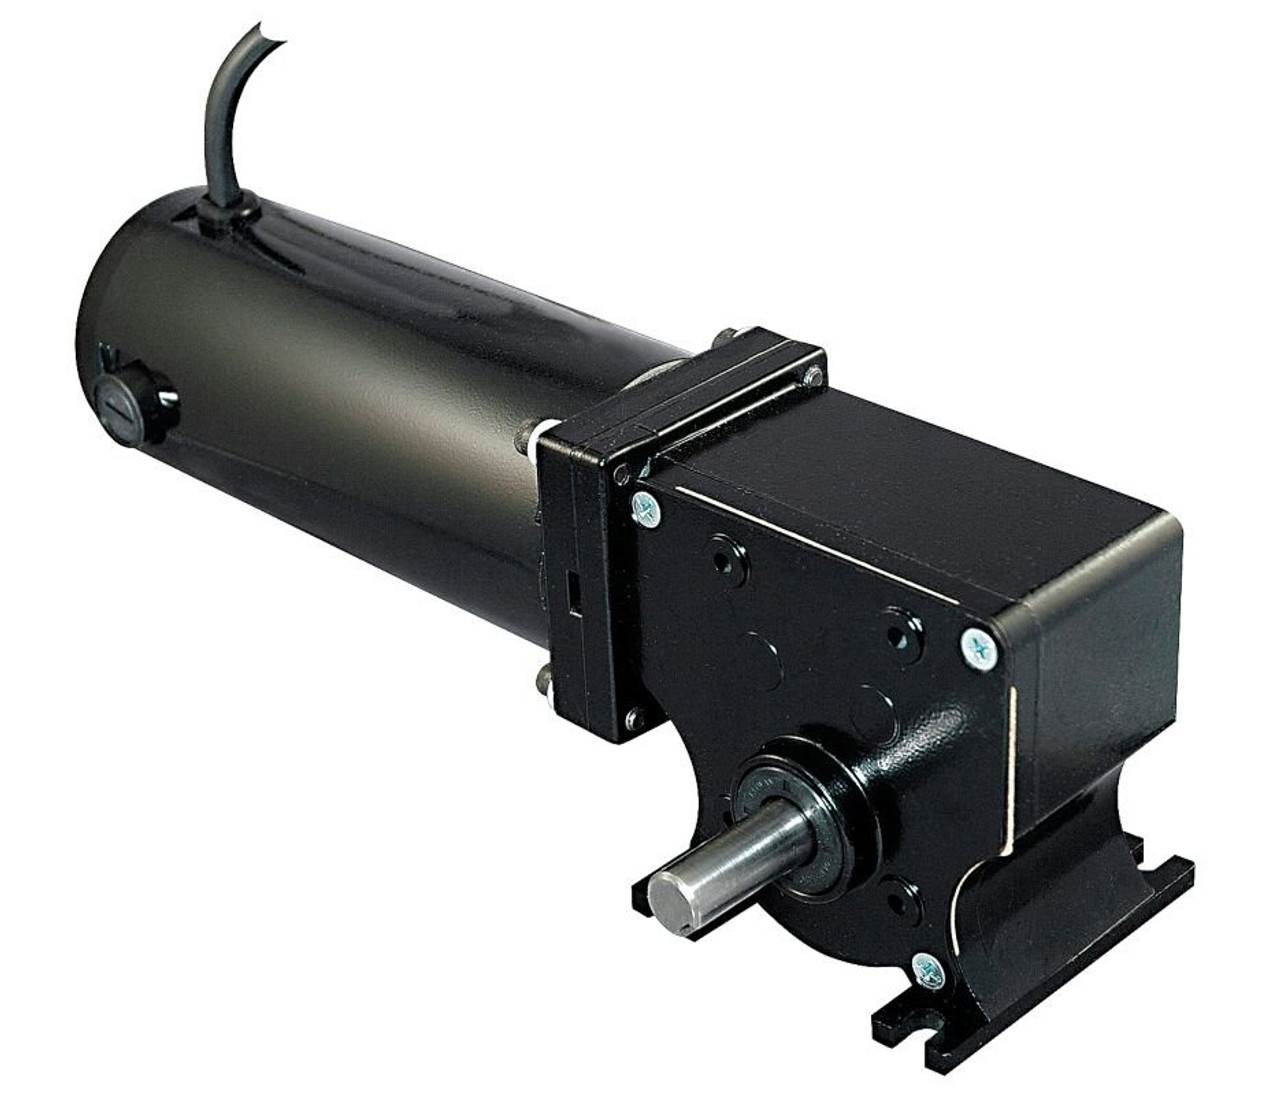 12 Volt Motor >> Dayton 12 Volt Dc Right Angle Gear Motor 1 8 Hp 54 Rpm 5laf7